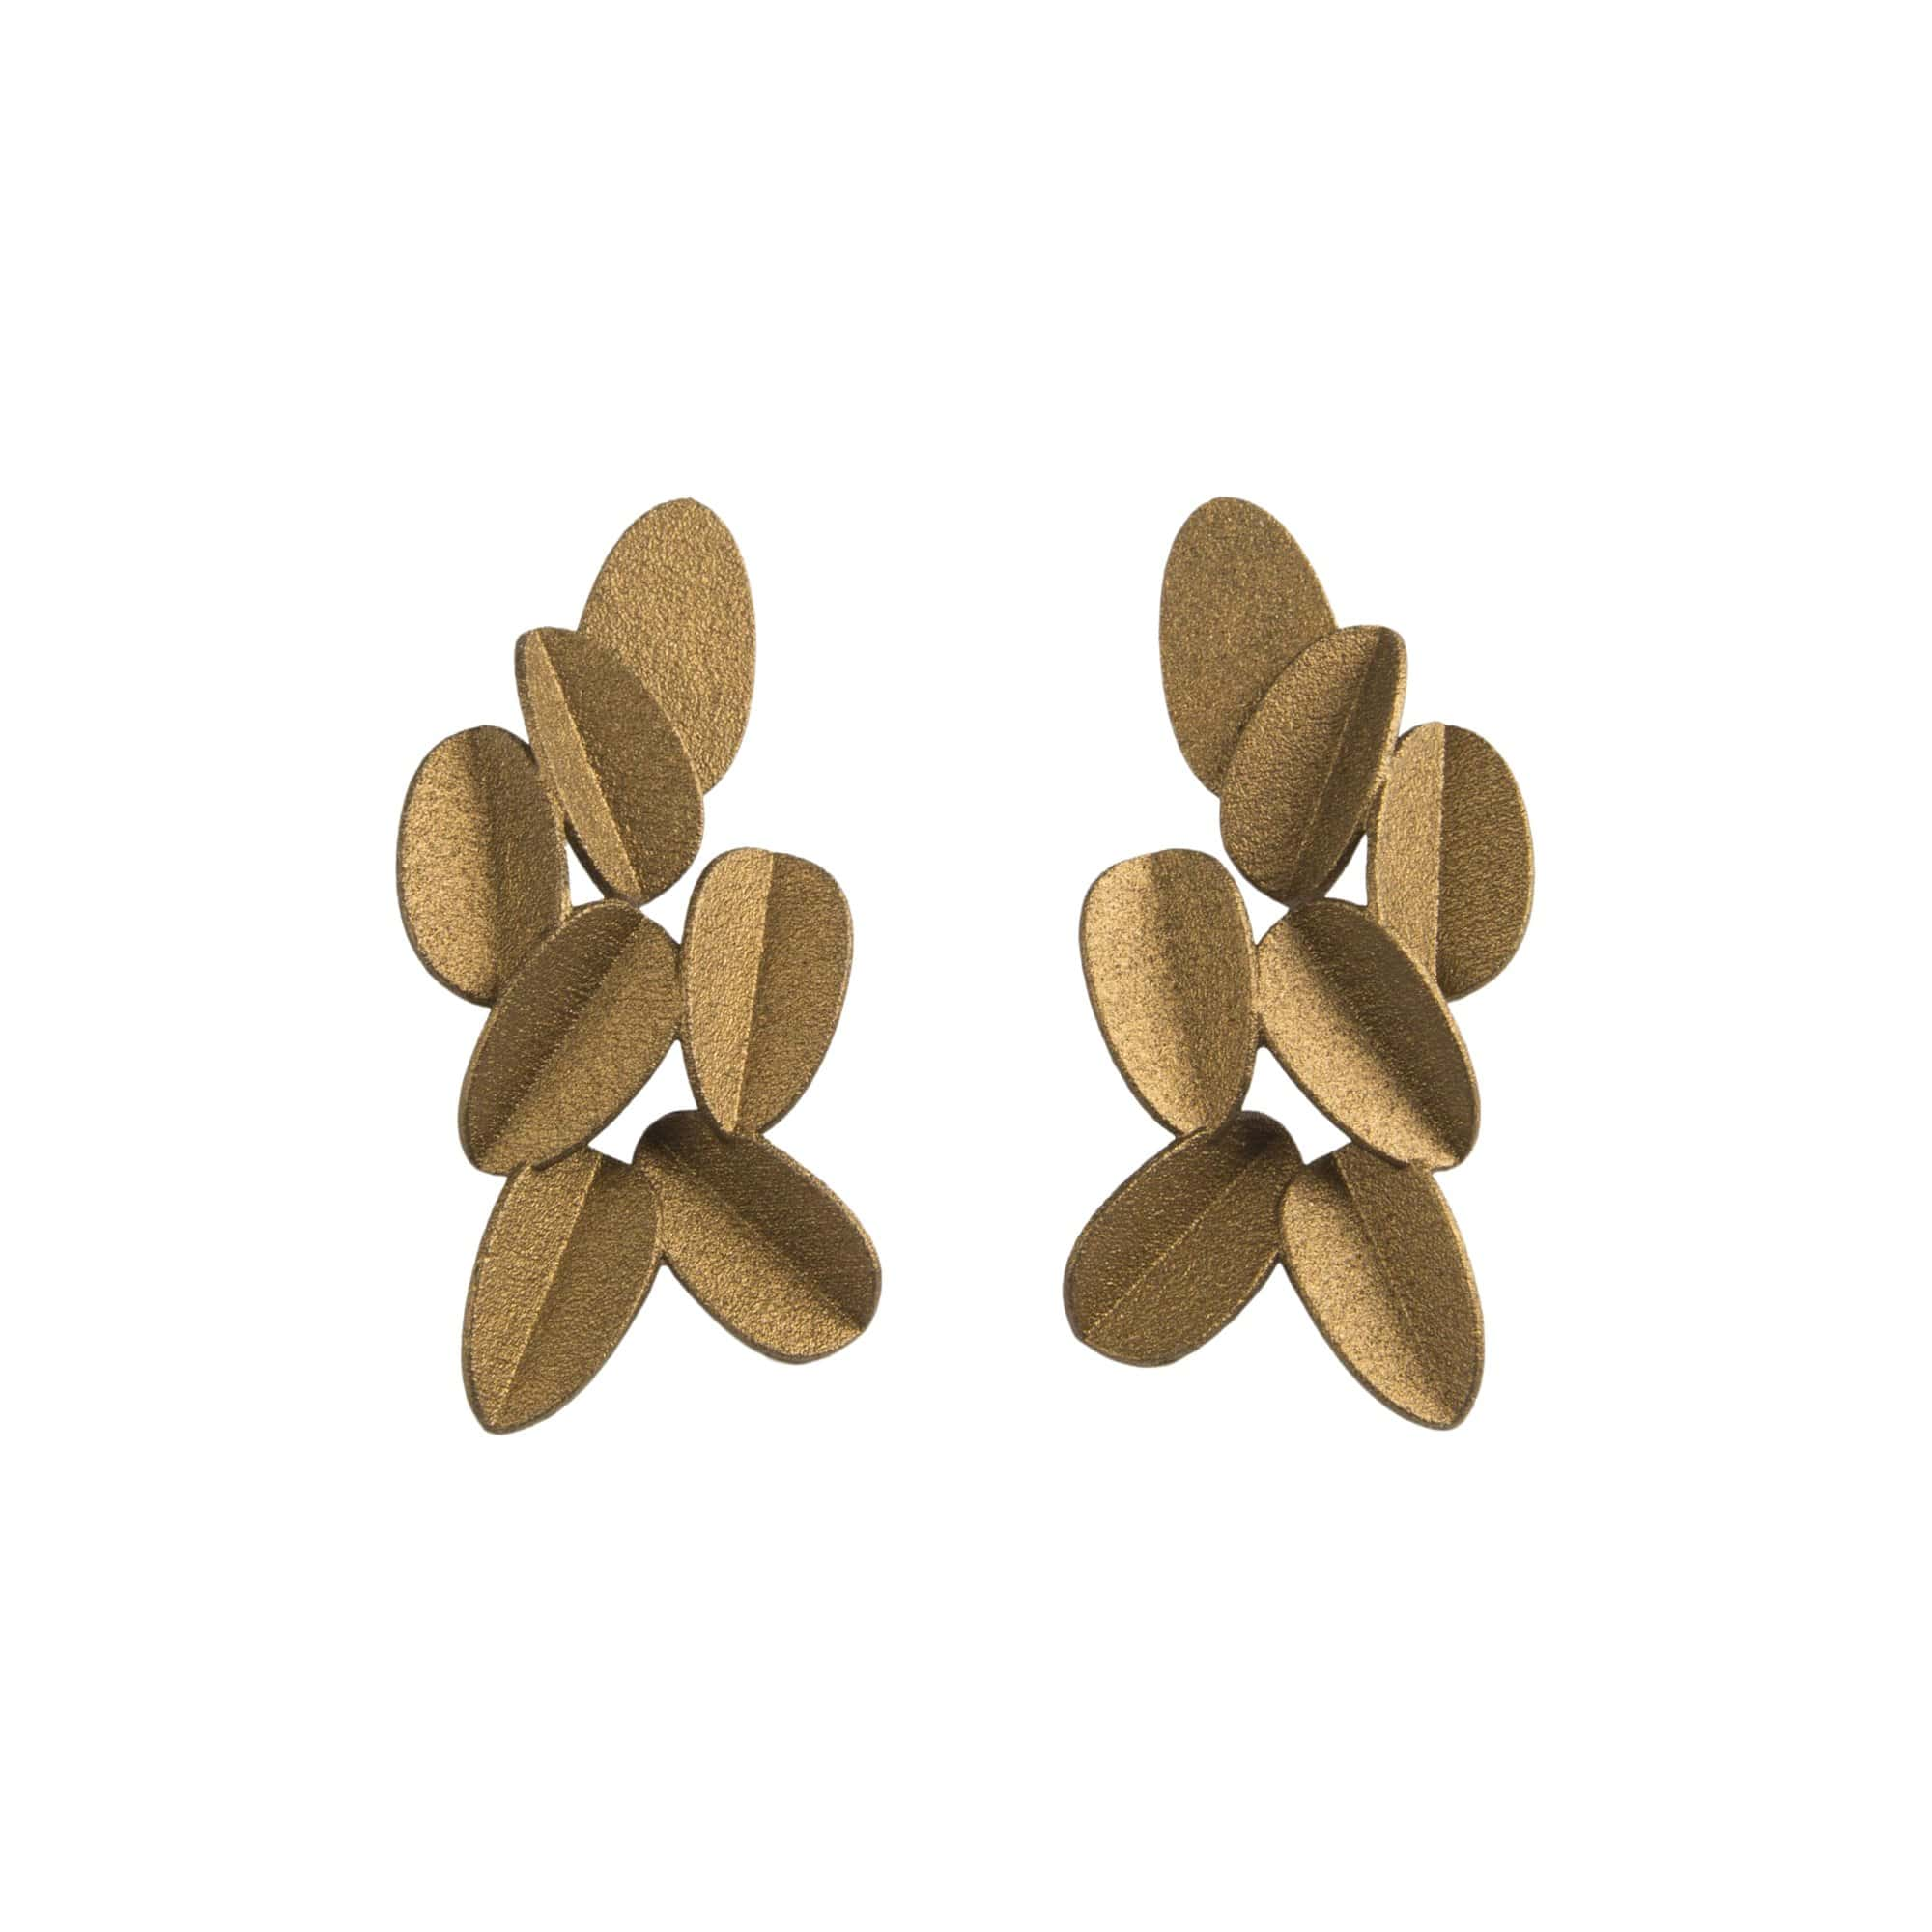 maison 203 Earrings Gold Metallic Leaves Earrings ll